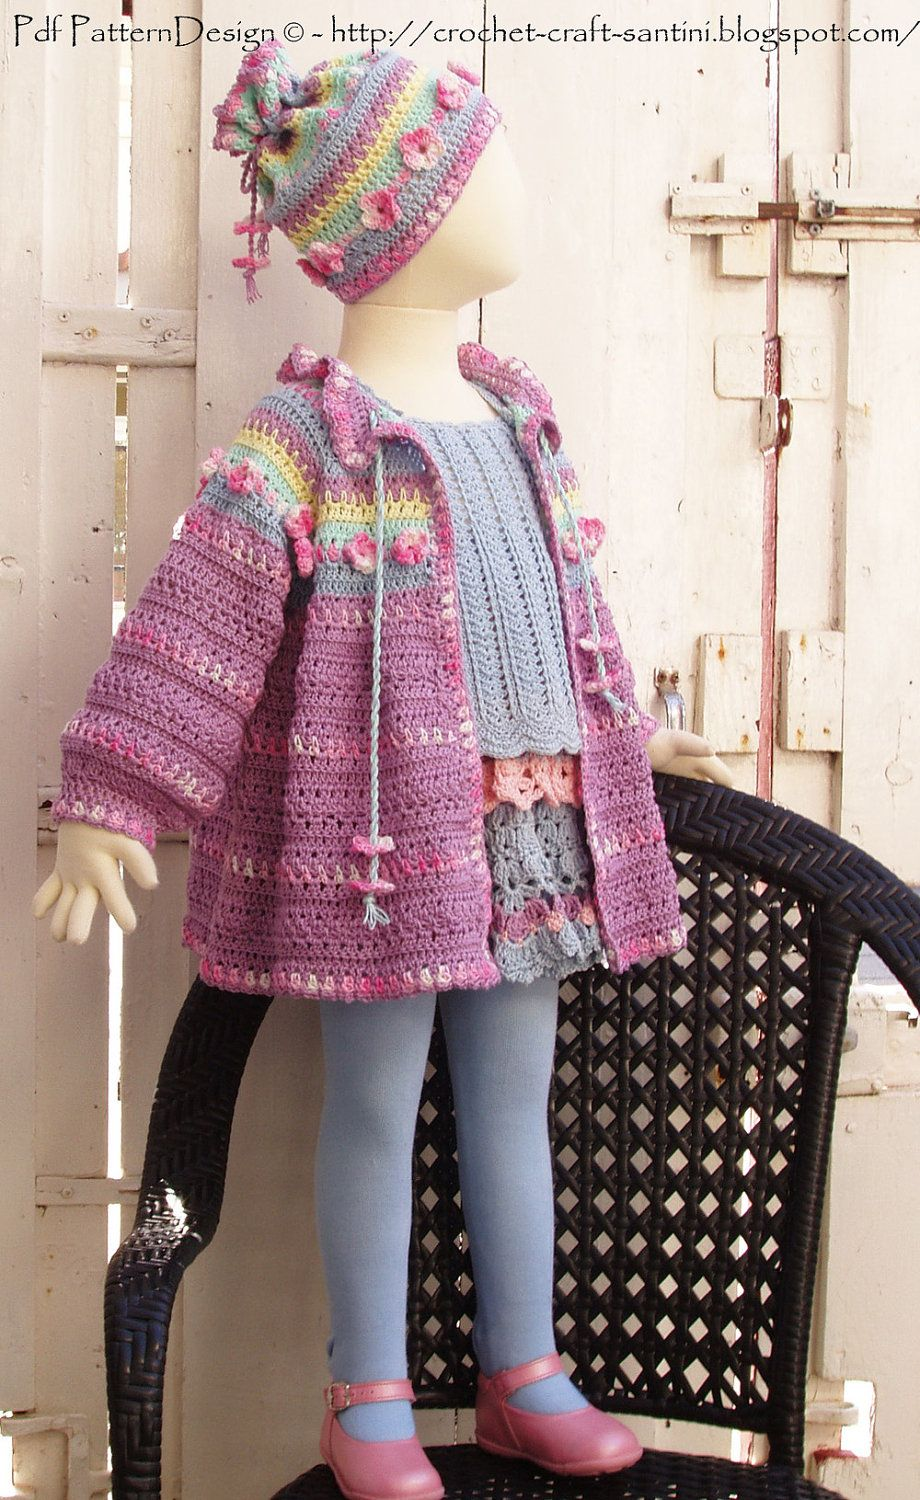 Summer Cardigan with Flowers - Crochet Pattern Instant Download ...